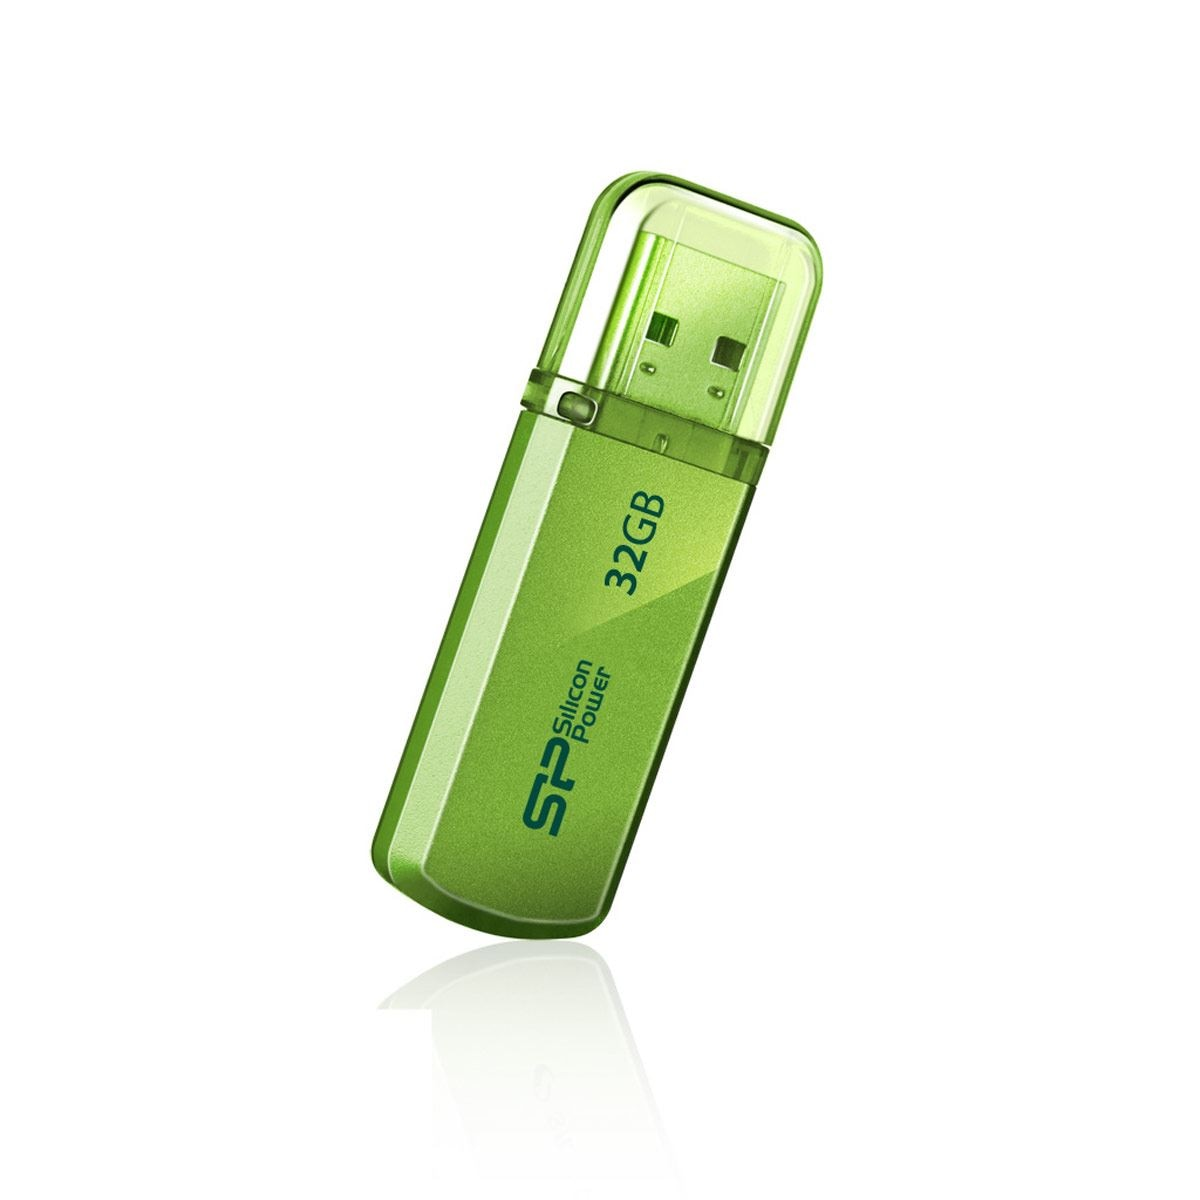 USB Aluminio Verde Limon 32GB Silicon Power